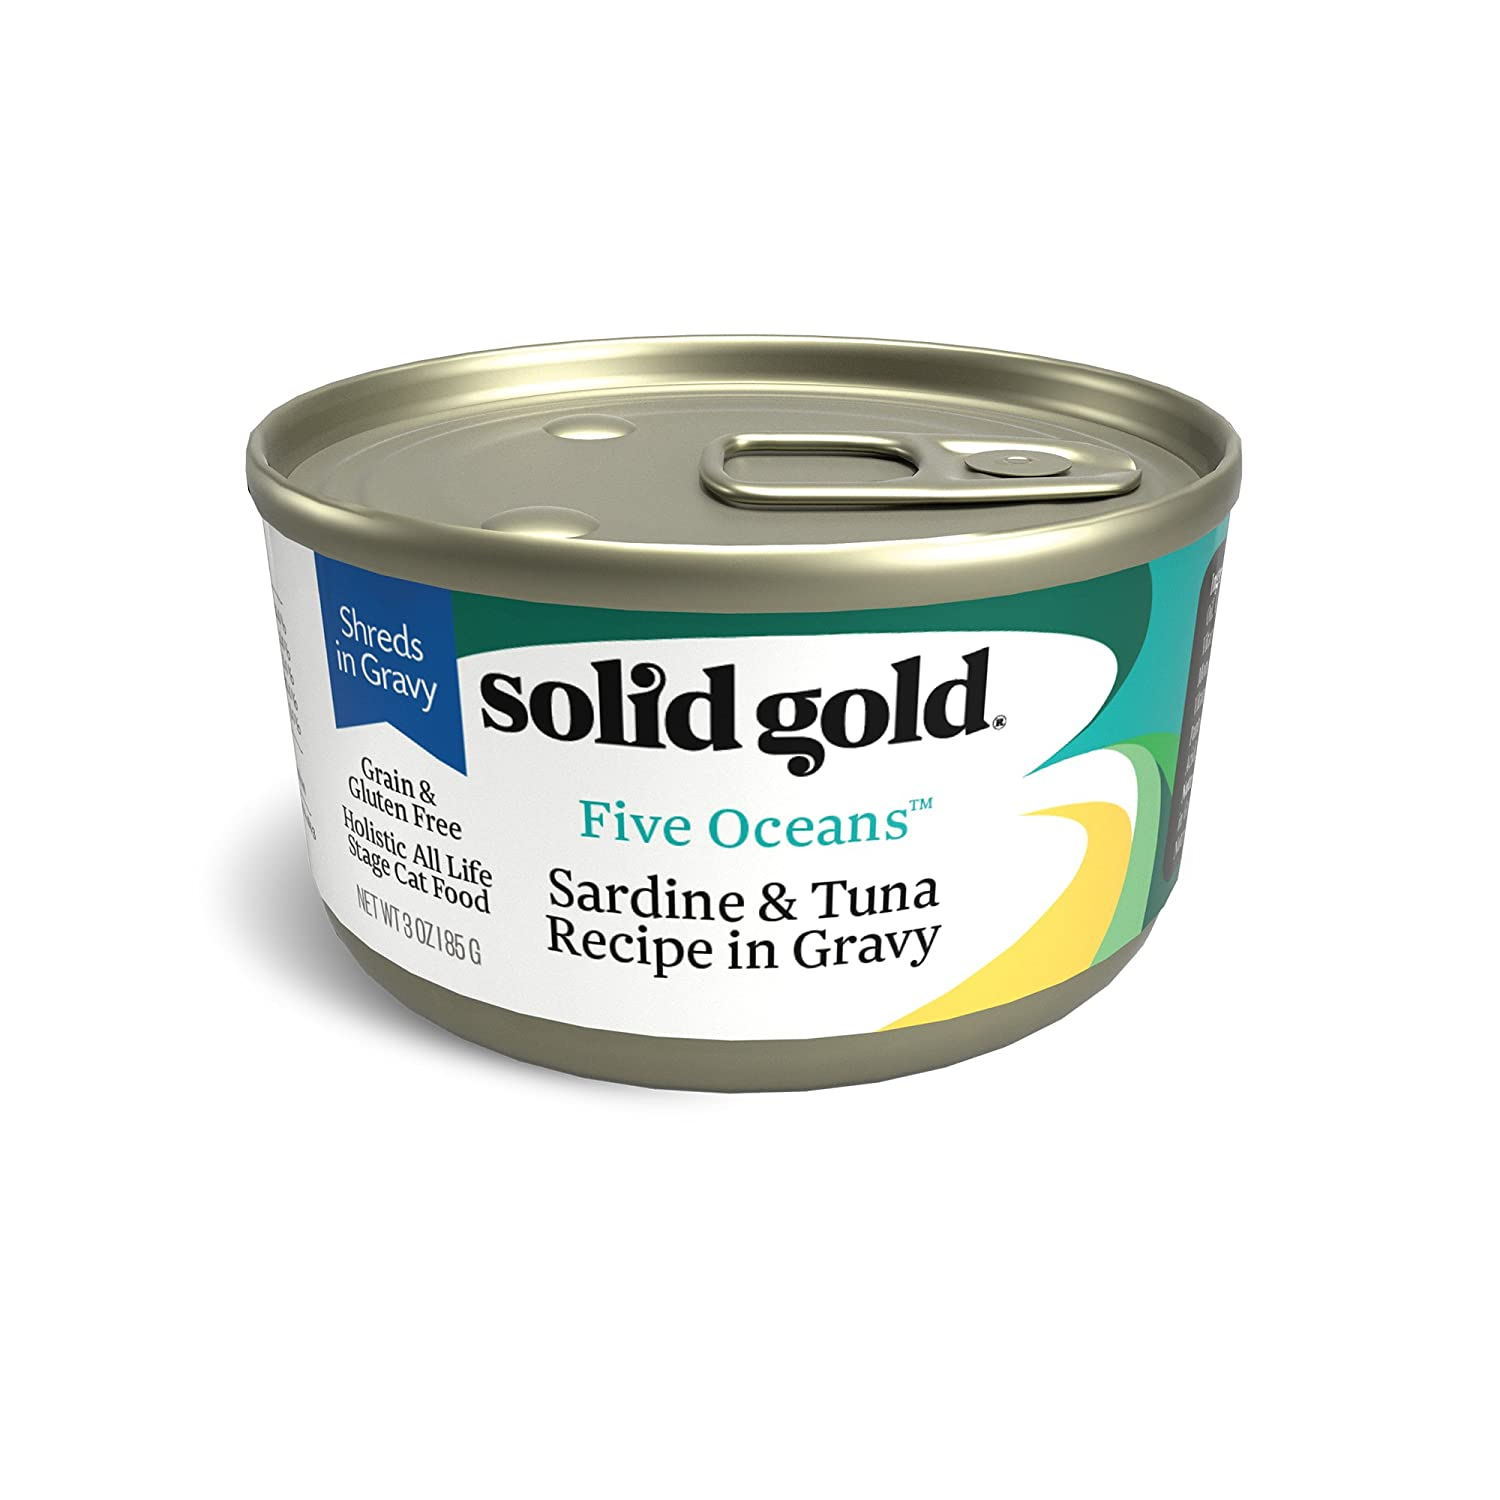 6 oz can (pack of 16) Solid gold Shreds in Gravy Wet Cat Food; Five Oceans with Real Sardine & Tuna, 16ct 6oz can